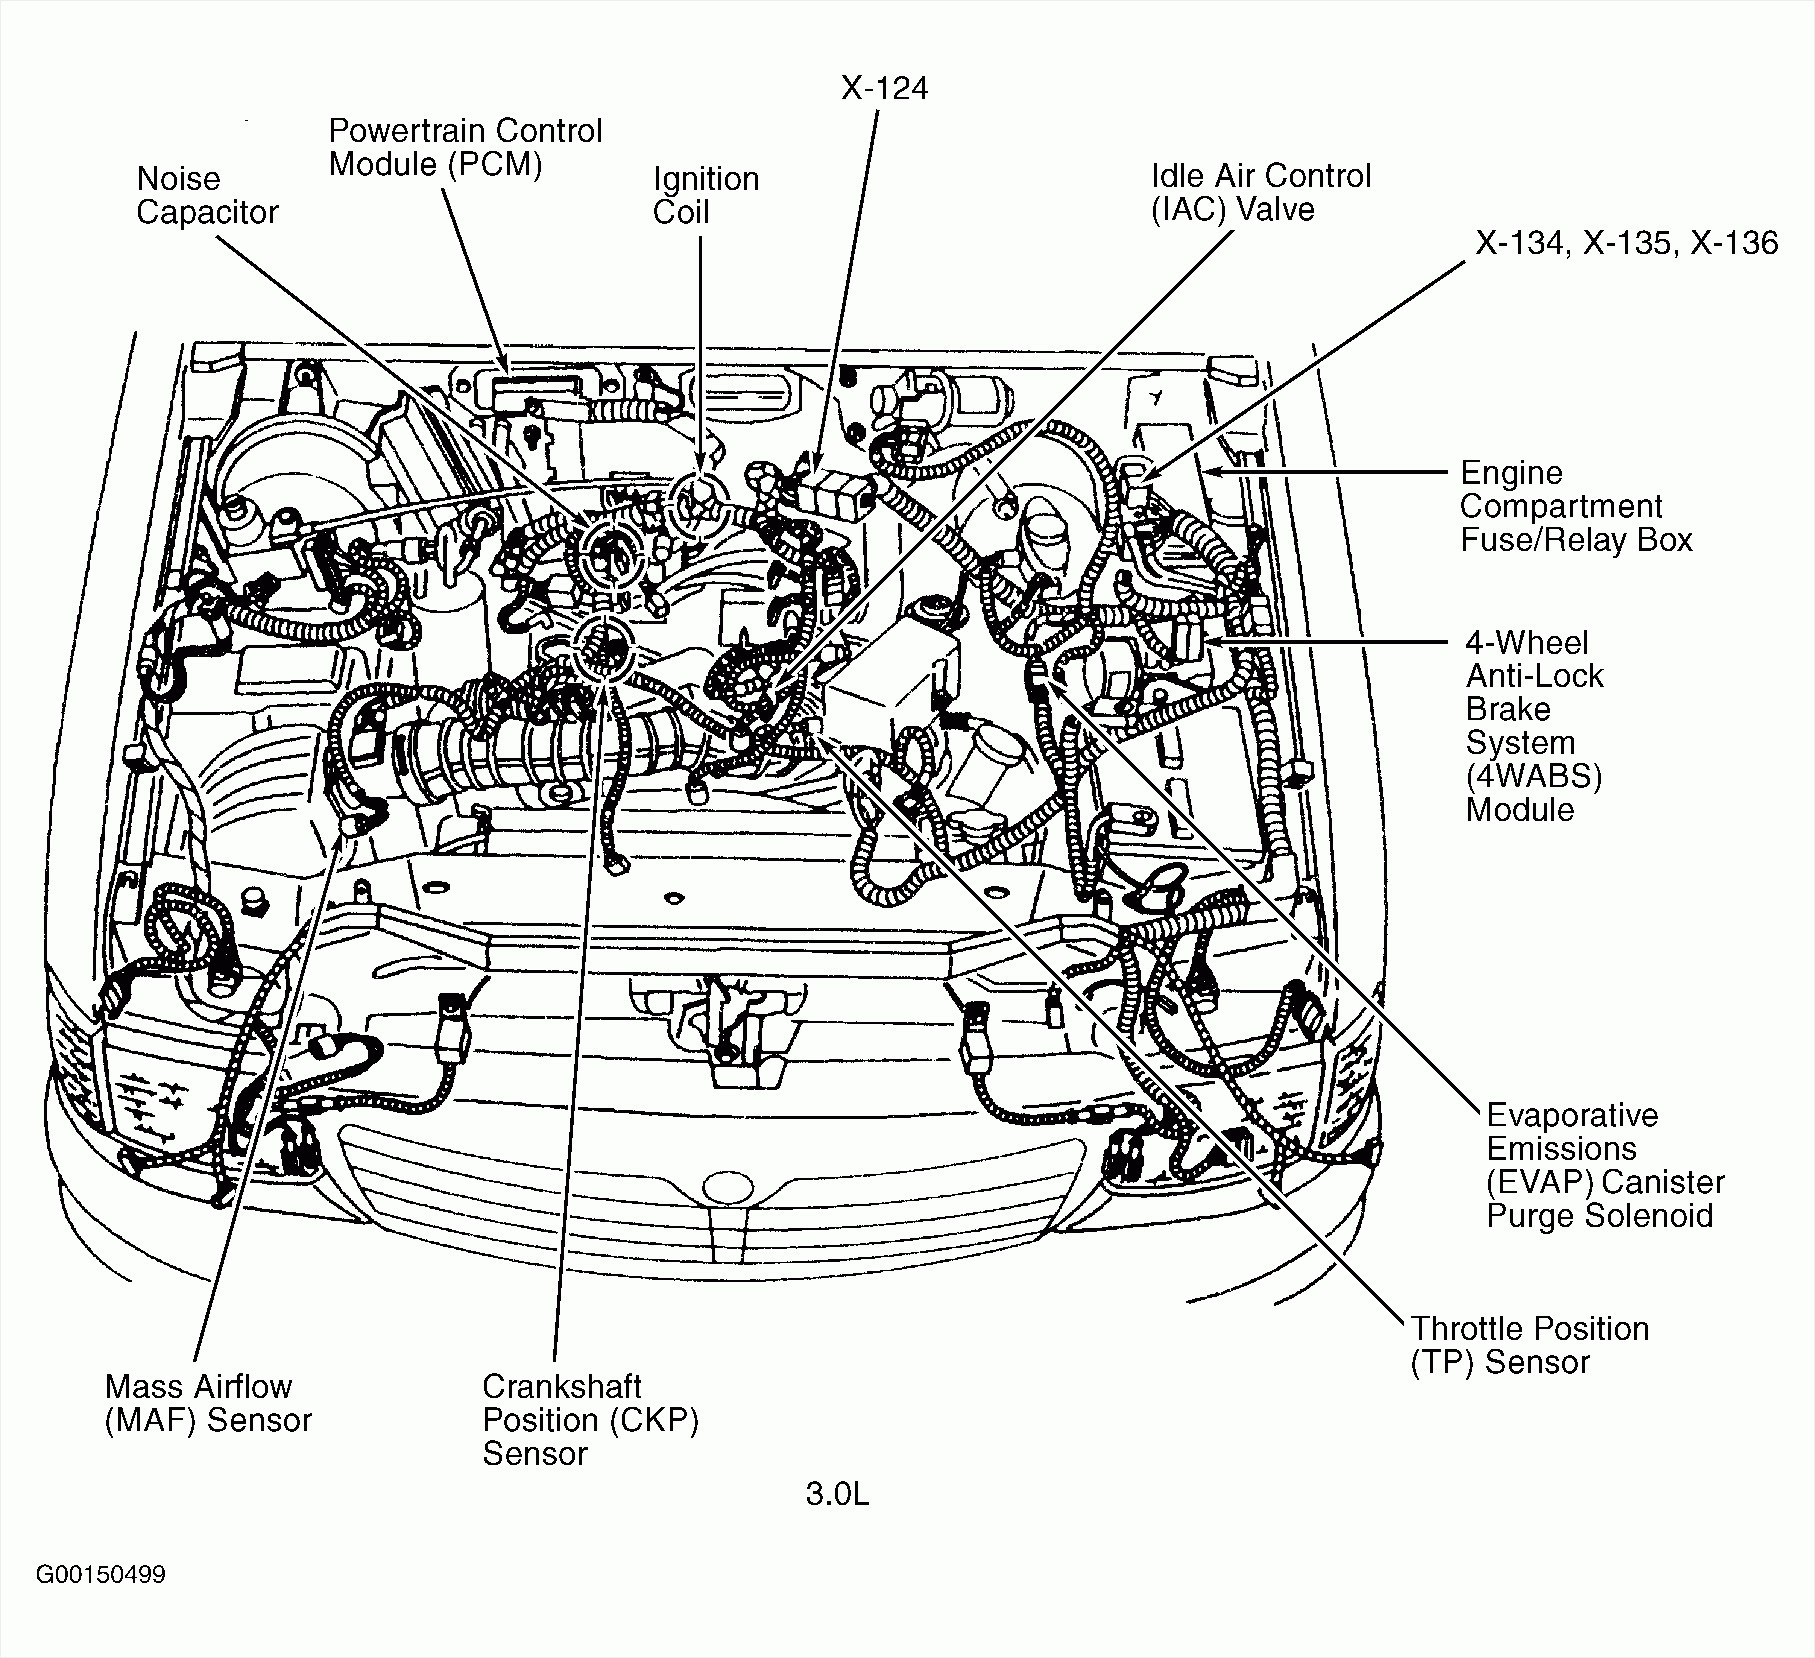 1997 buick regal engine diagram